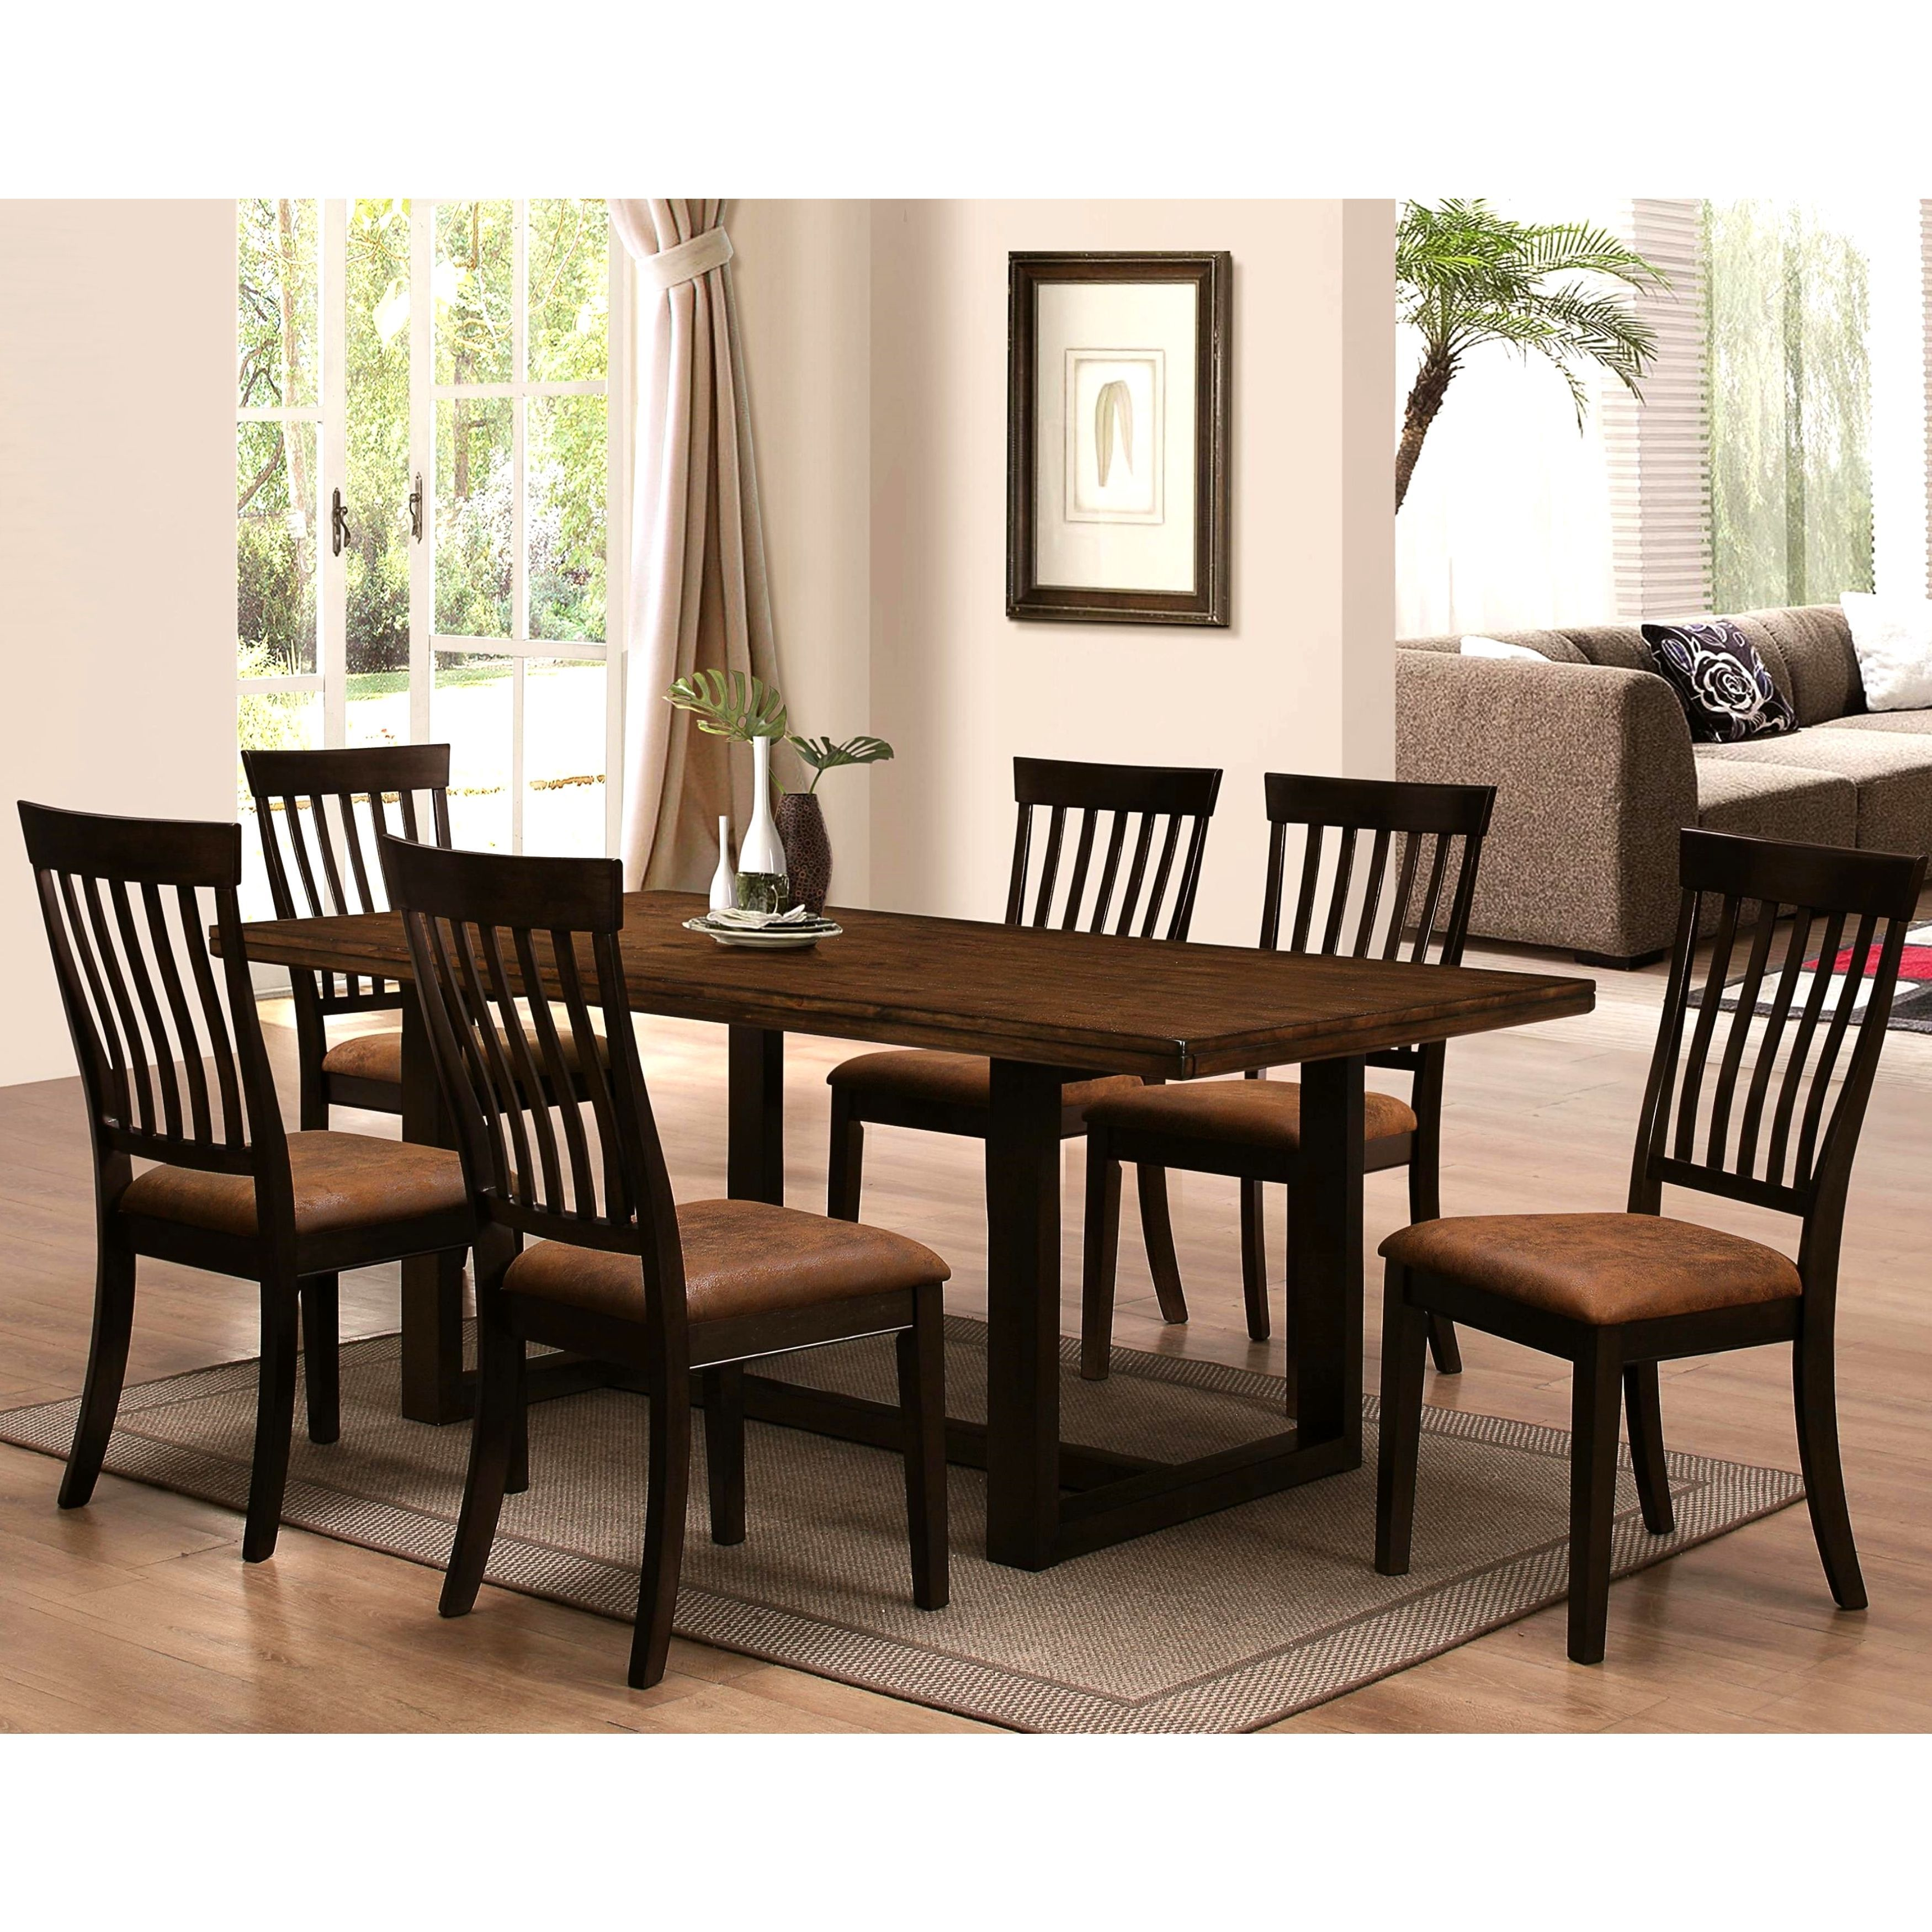 sen remo rustic two tone 7 piece dining set 1 table 6 chairs black size 7 piece sets